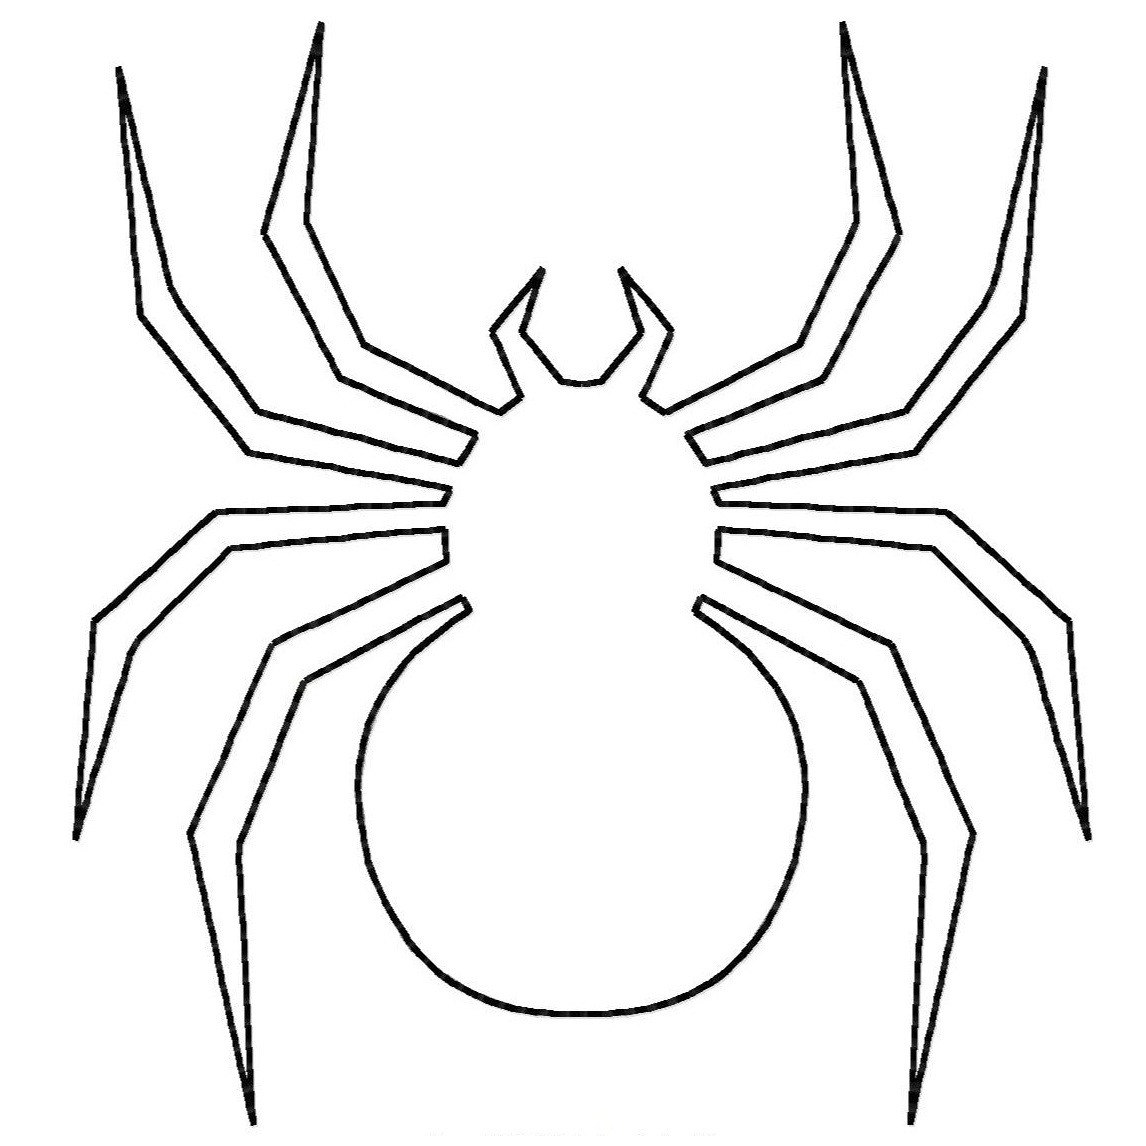 spider coloring page spider coloring pages to download and print for free page spider coloring